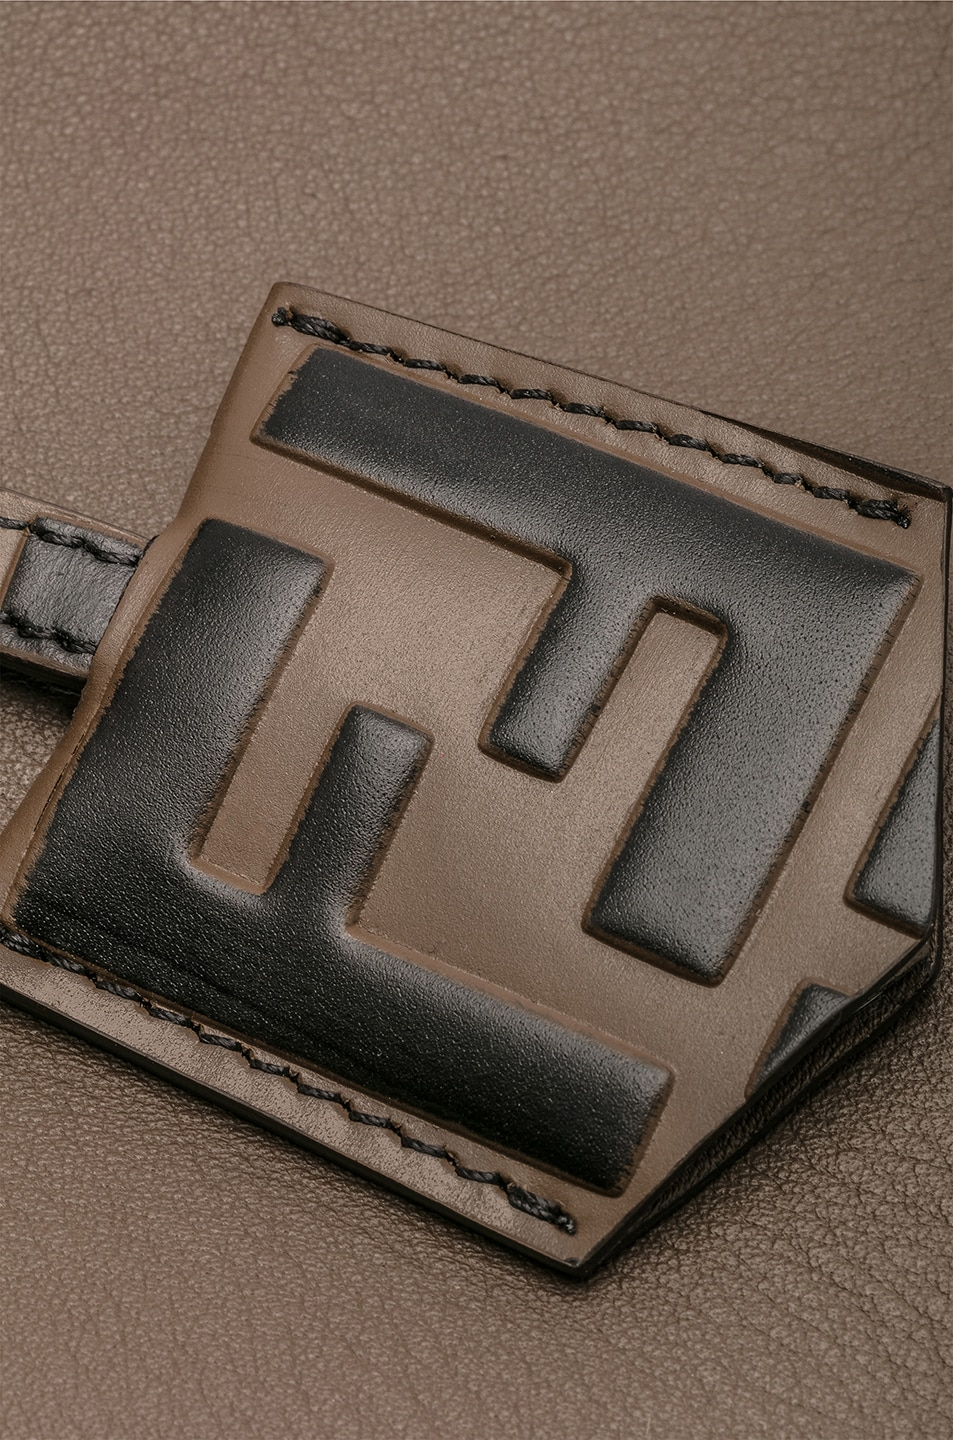 Image 8 of Fendi Medium Crossbody Bag in Chocolate